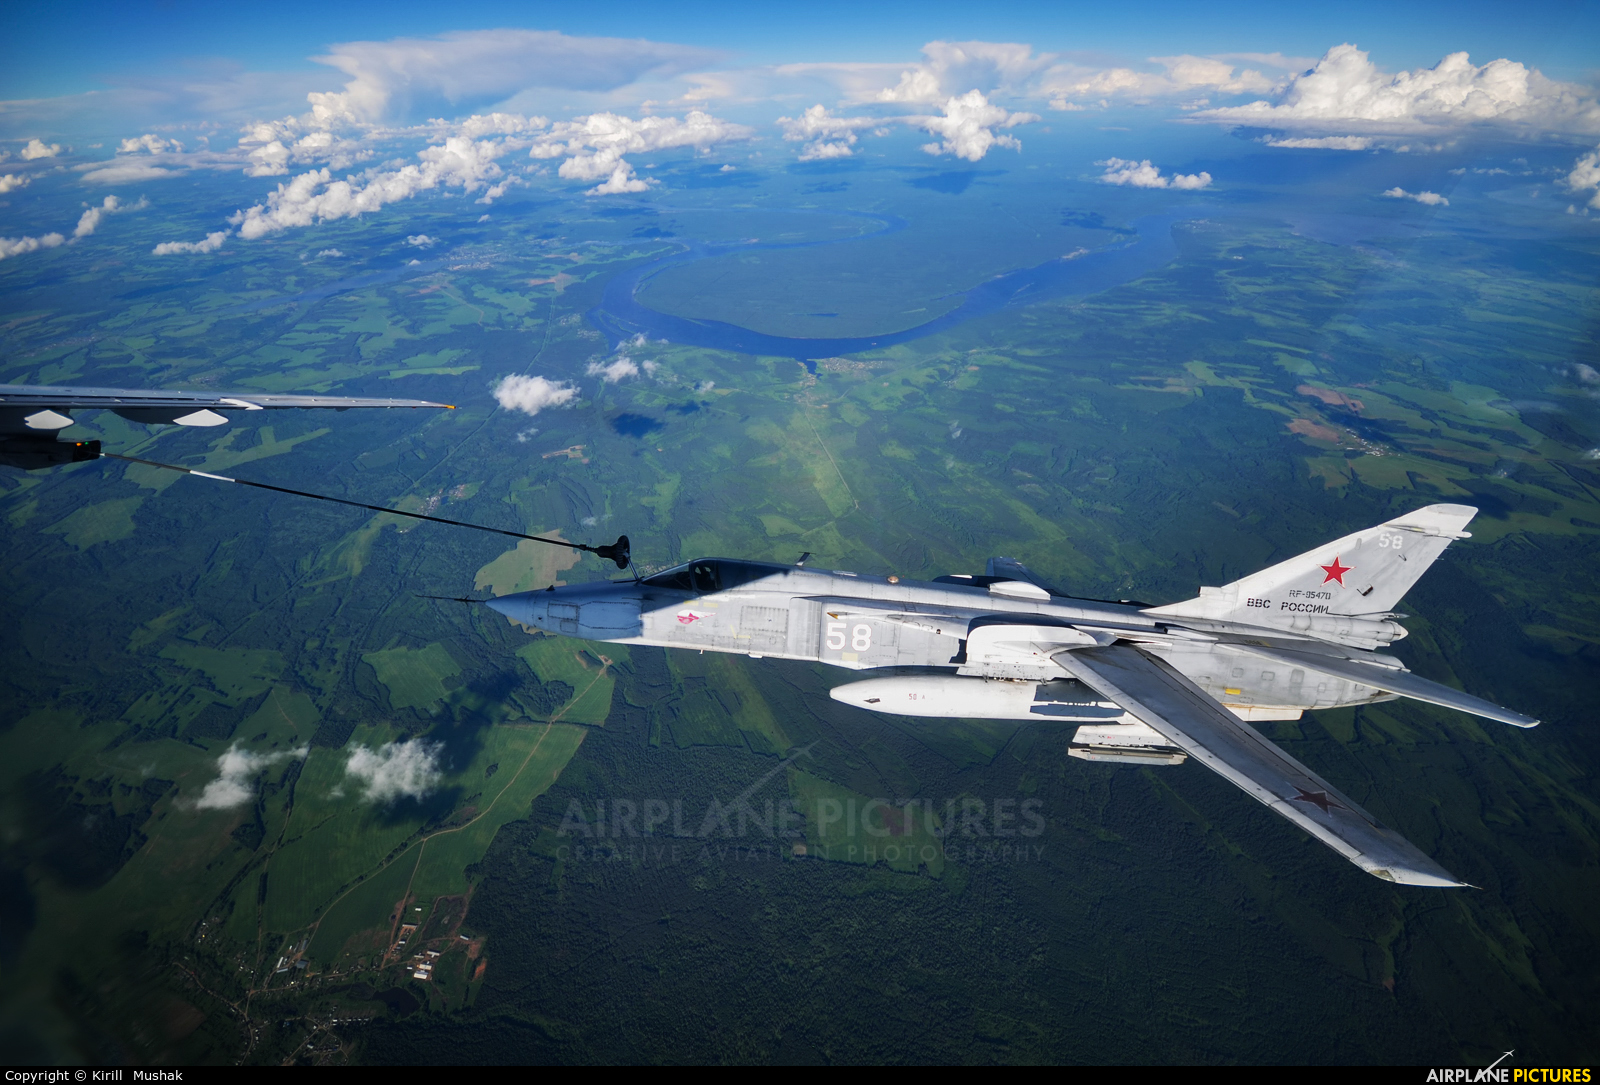 Russia - Air Force RF-95470 aircraft at In Flight - Russia